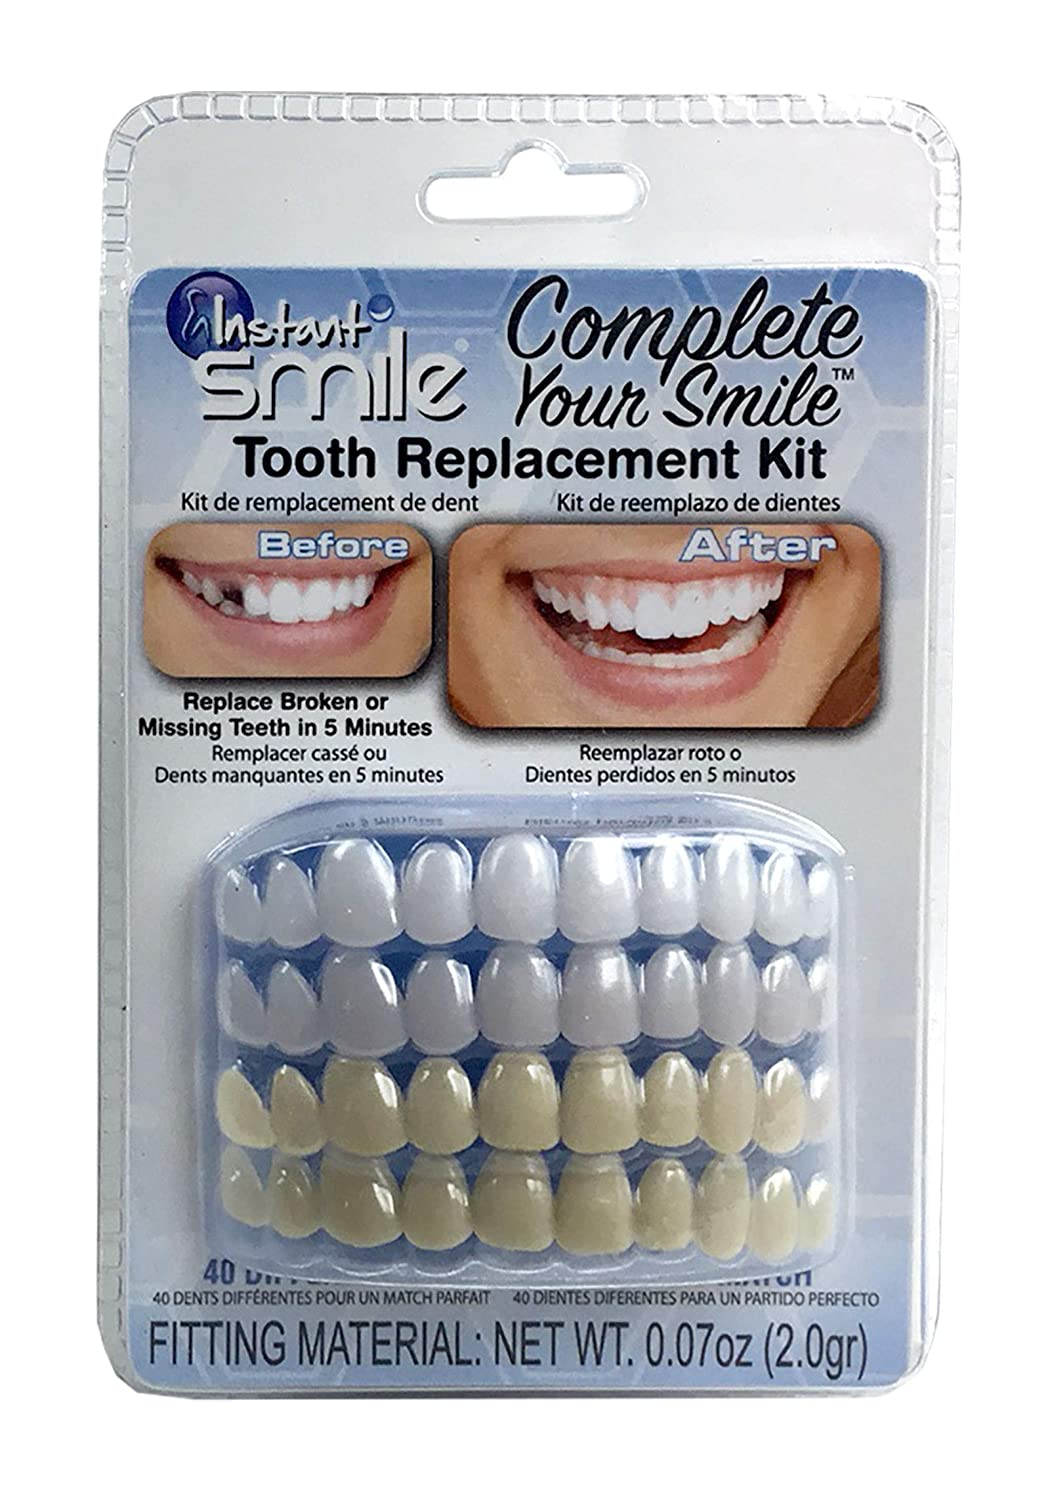 Instant Smile Complete Your Smile Temporary Tooth Replacement Kit - Replace a missing tooth in minutes - Patented